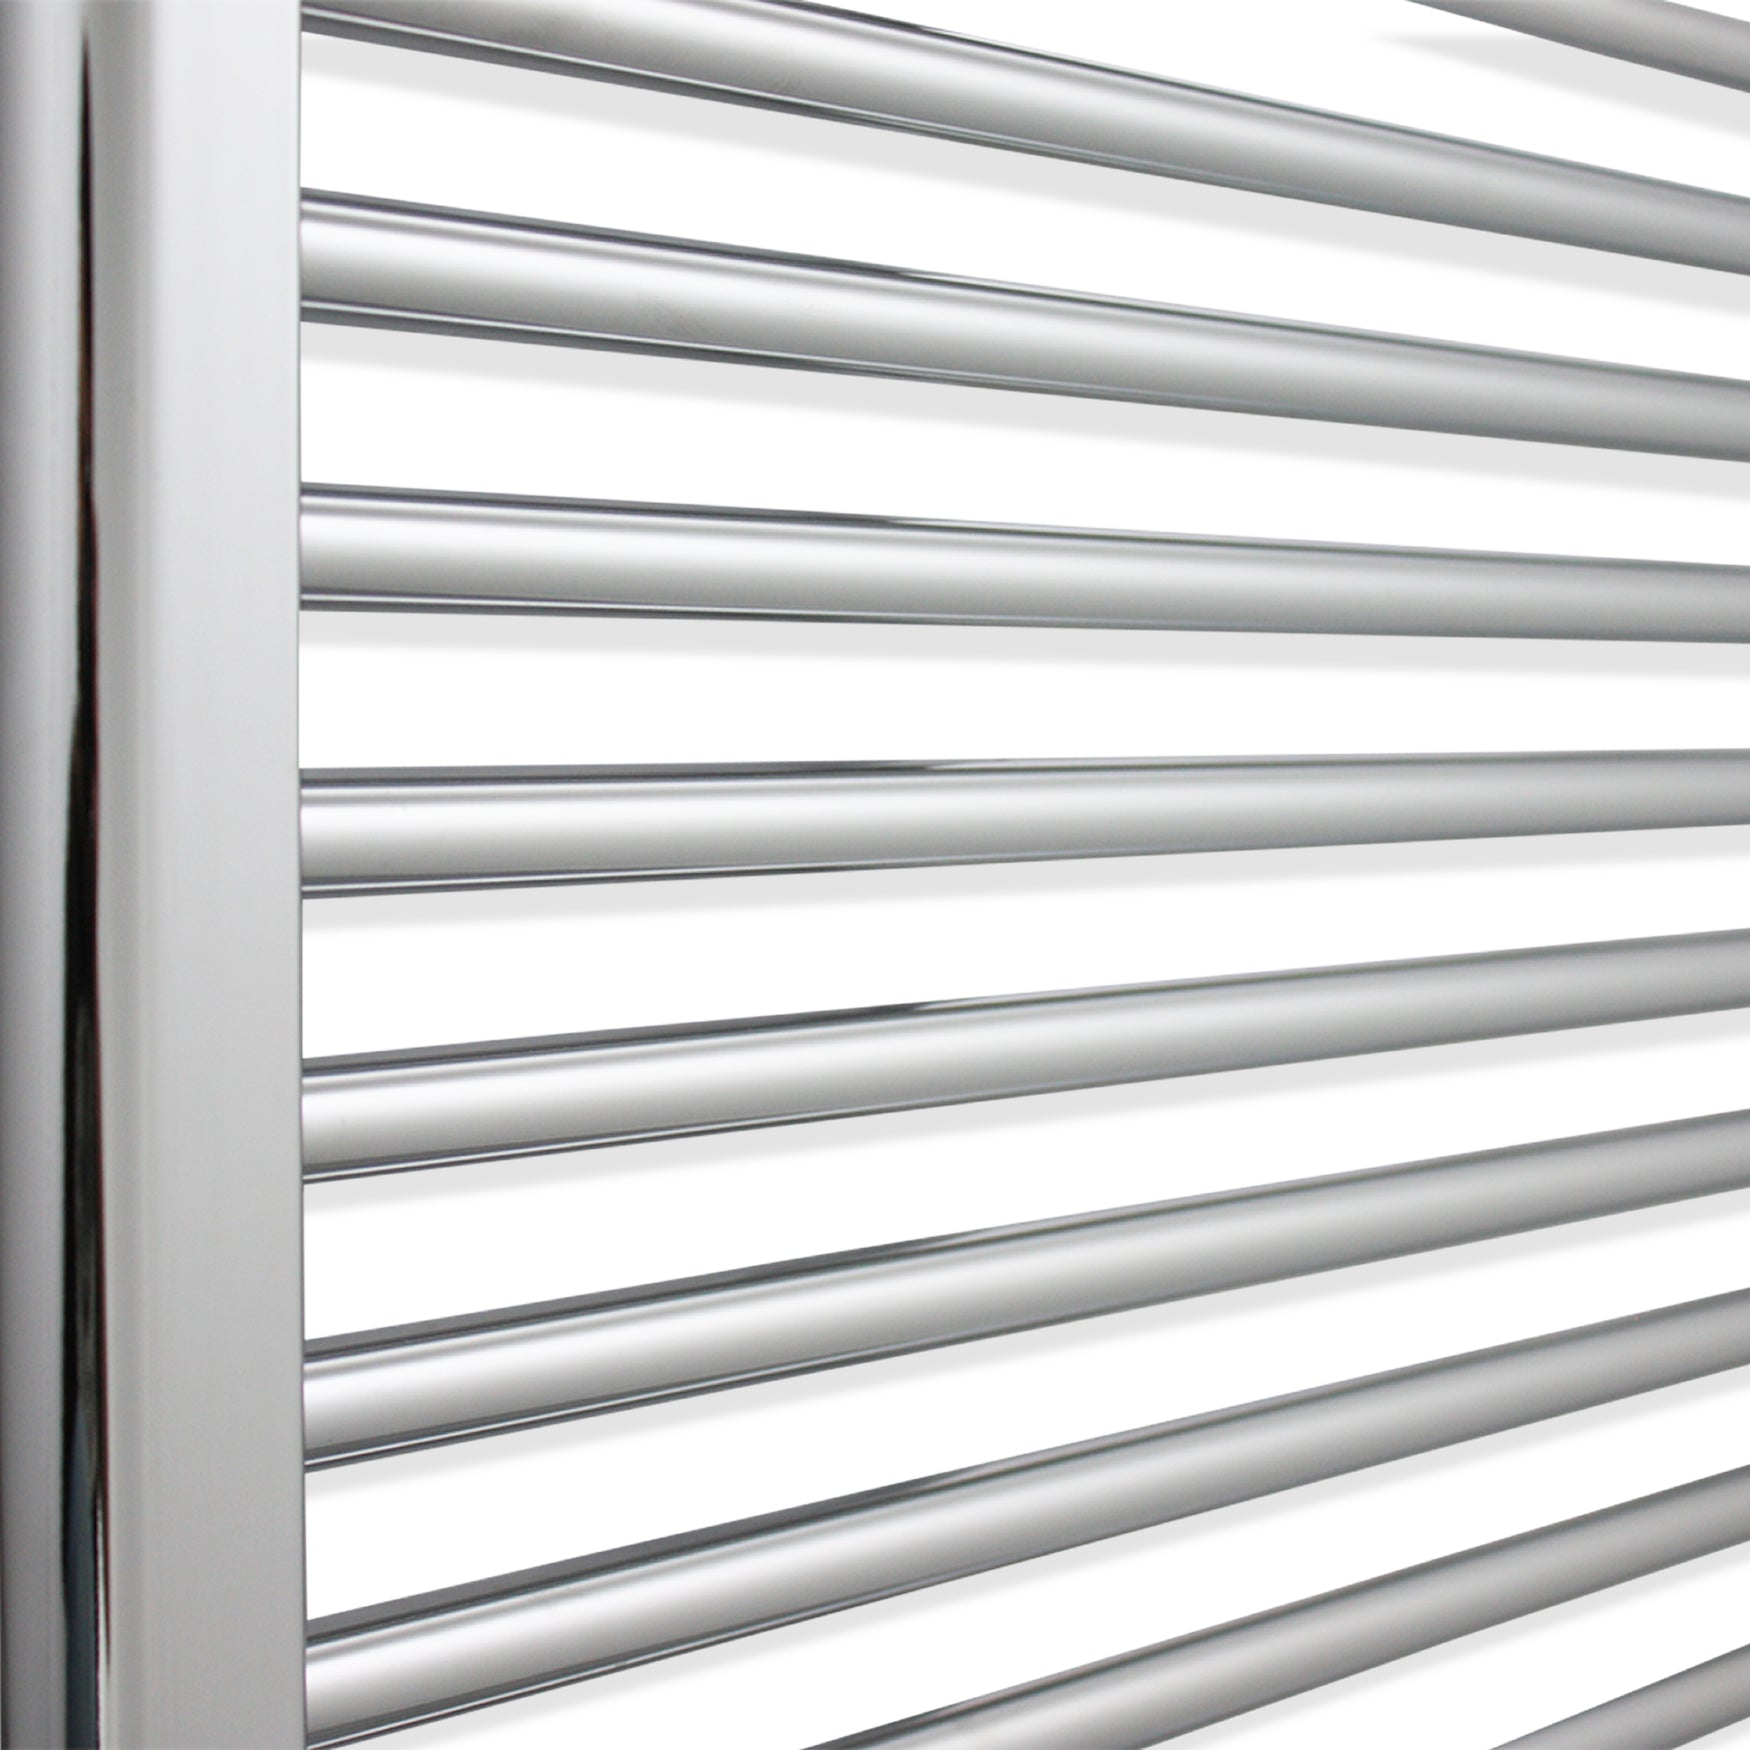 300mm Wide 1800mm High Flat Chrome Heated Towel Rail Radiator